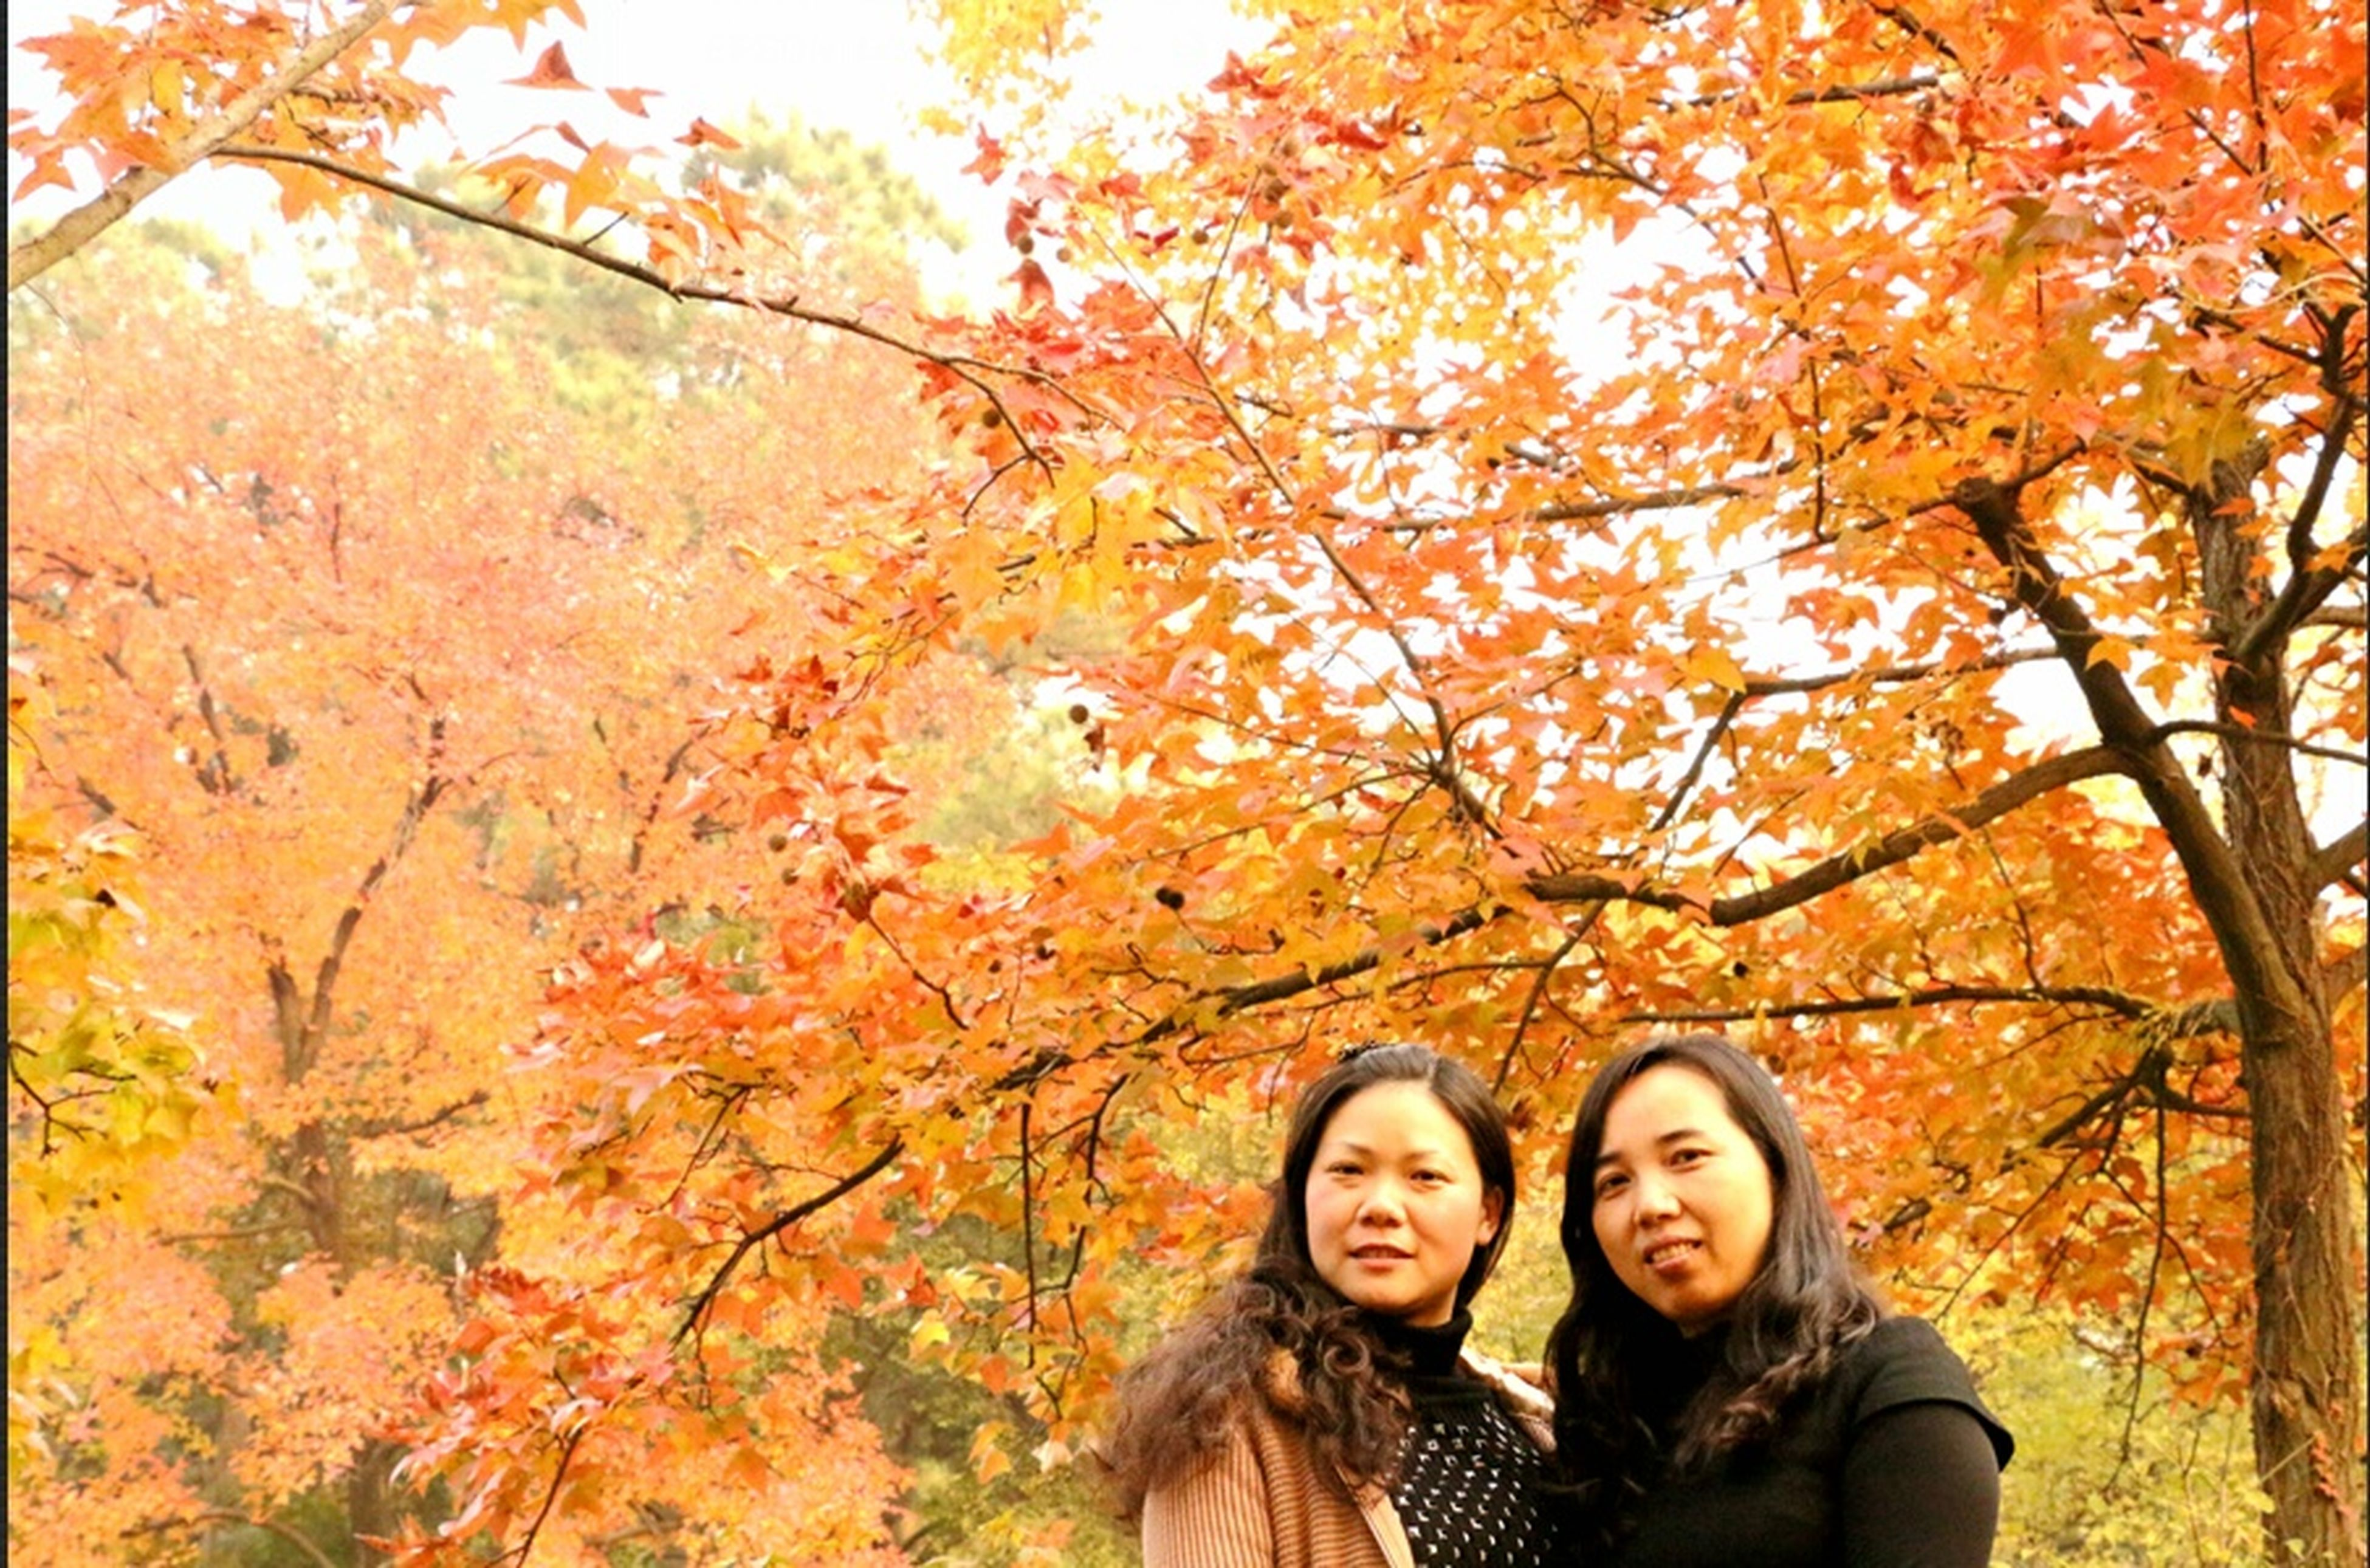 Darkness And Light In Late Autumn The Two Women